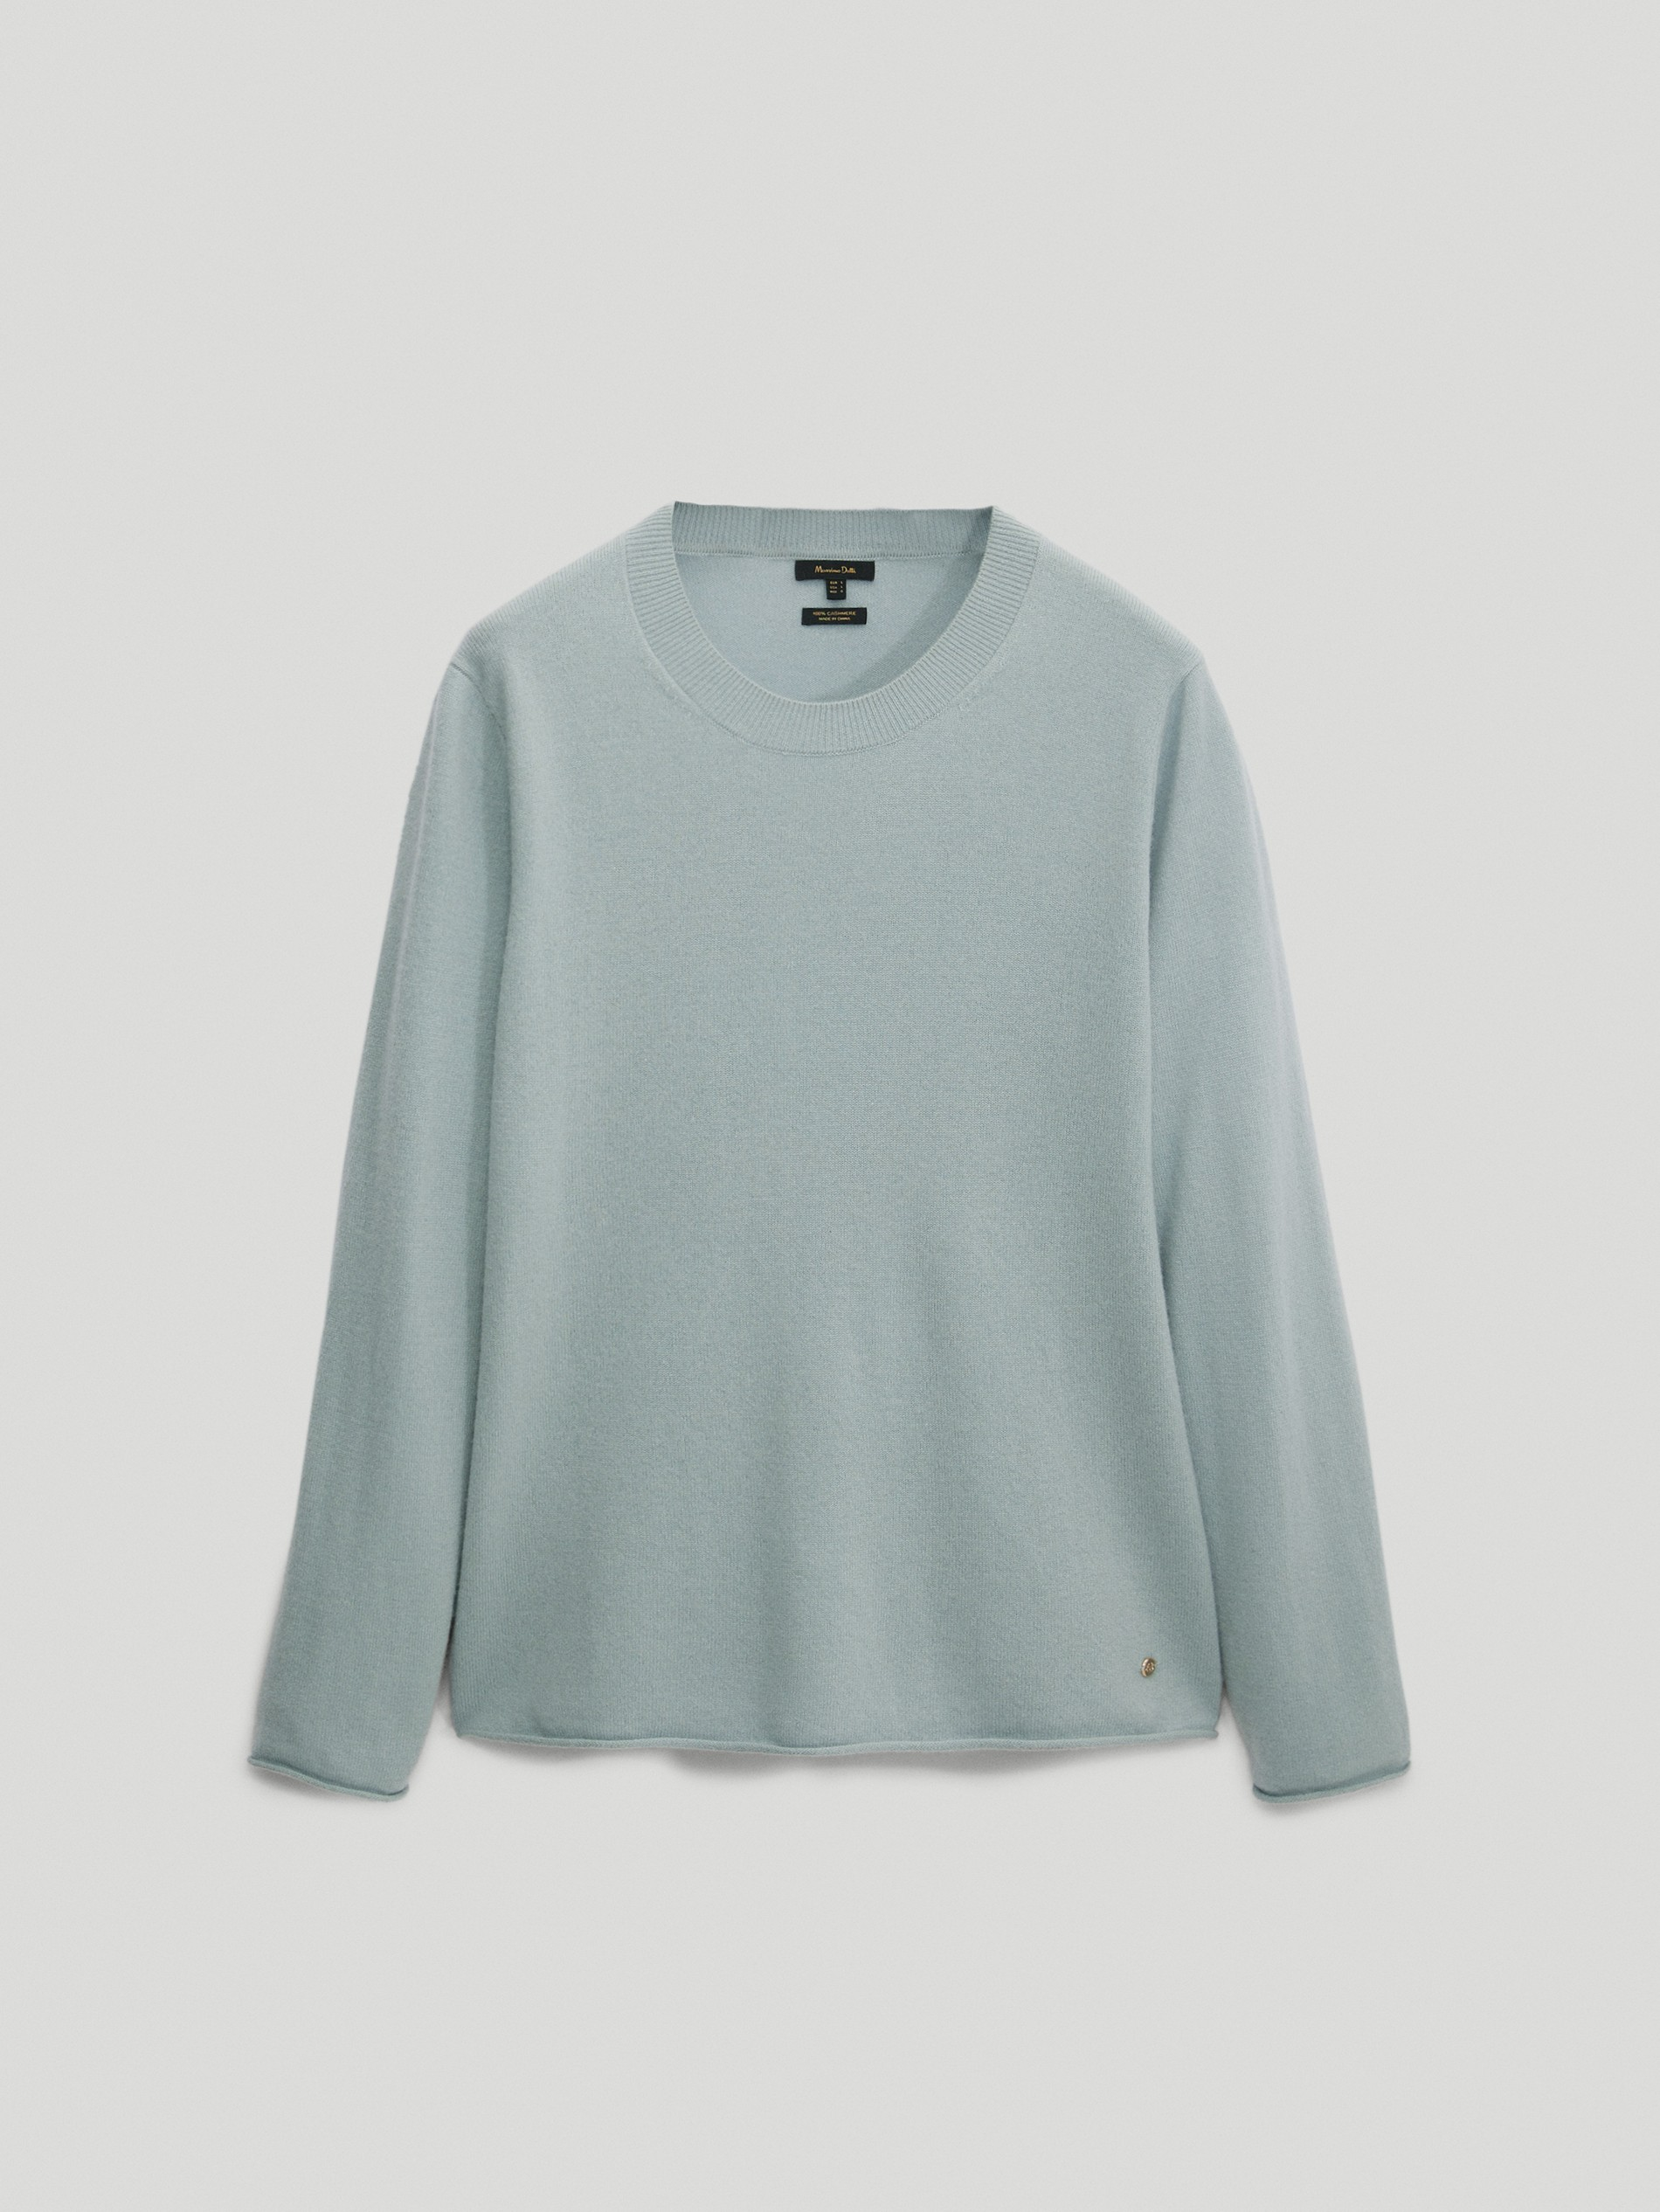 100% cashmere crew neck sweater by Massimo Dutti, available on massimodutti.com for EUR12900 Kate Middleton Top Exact Product